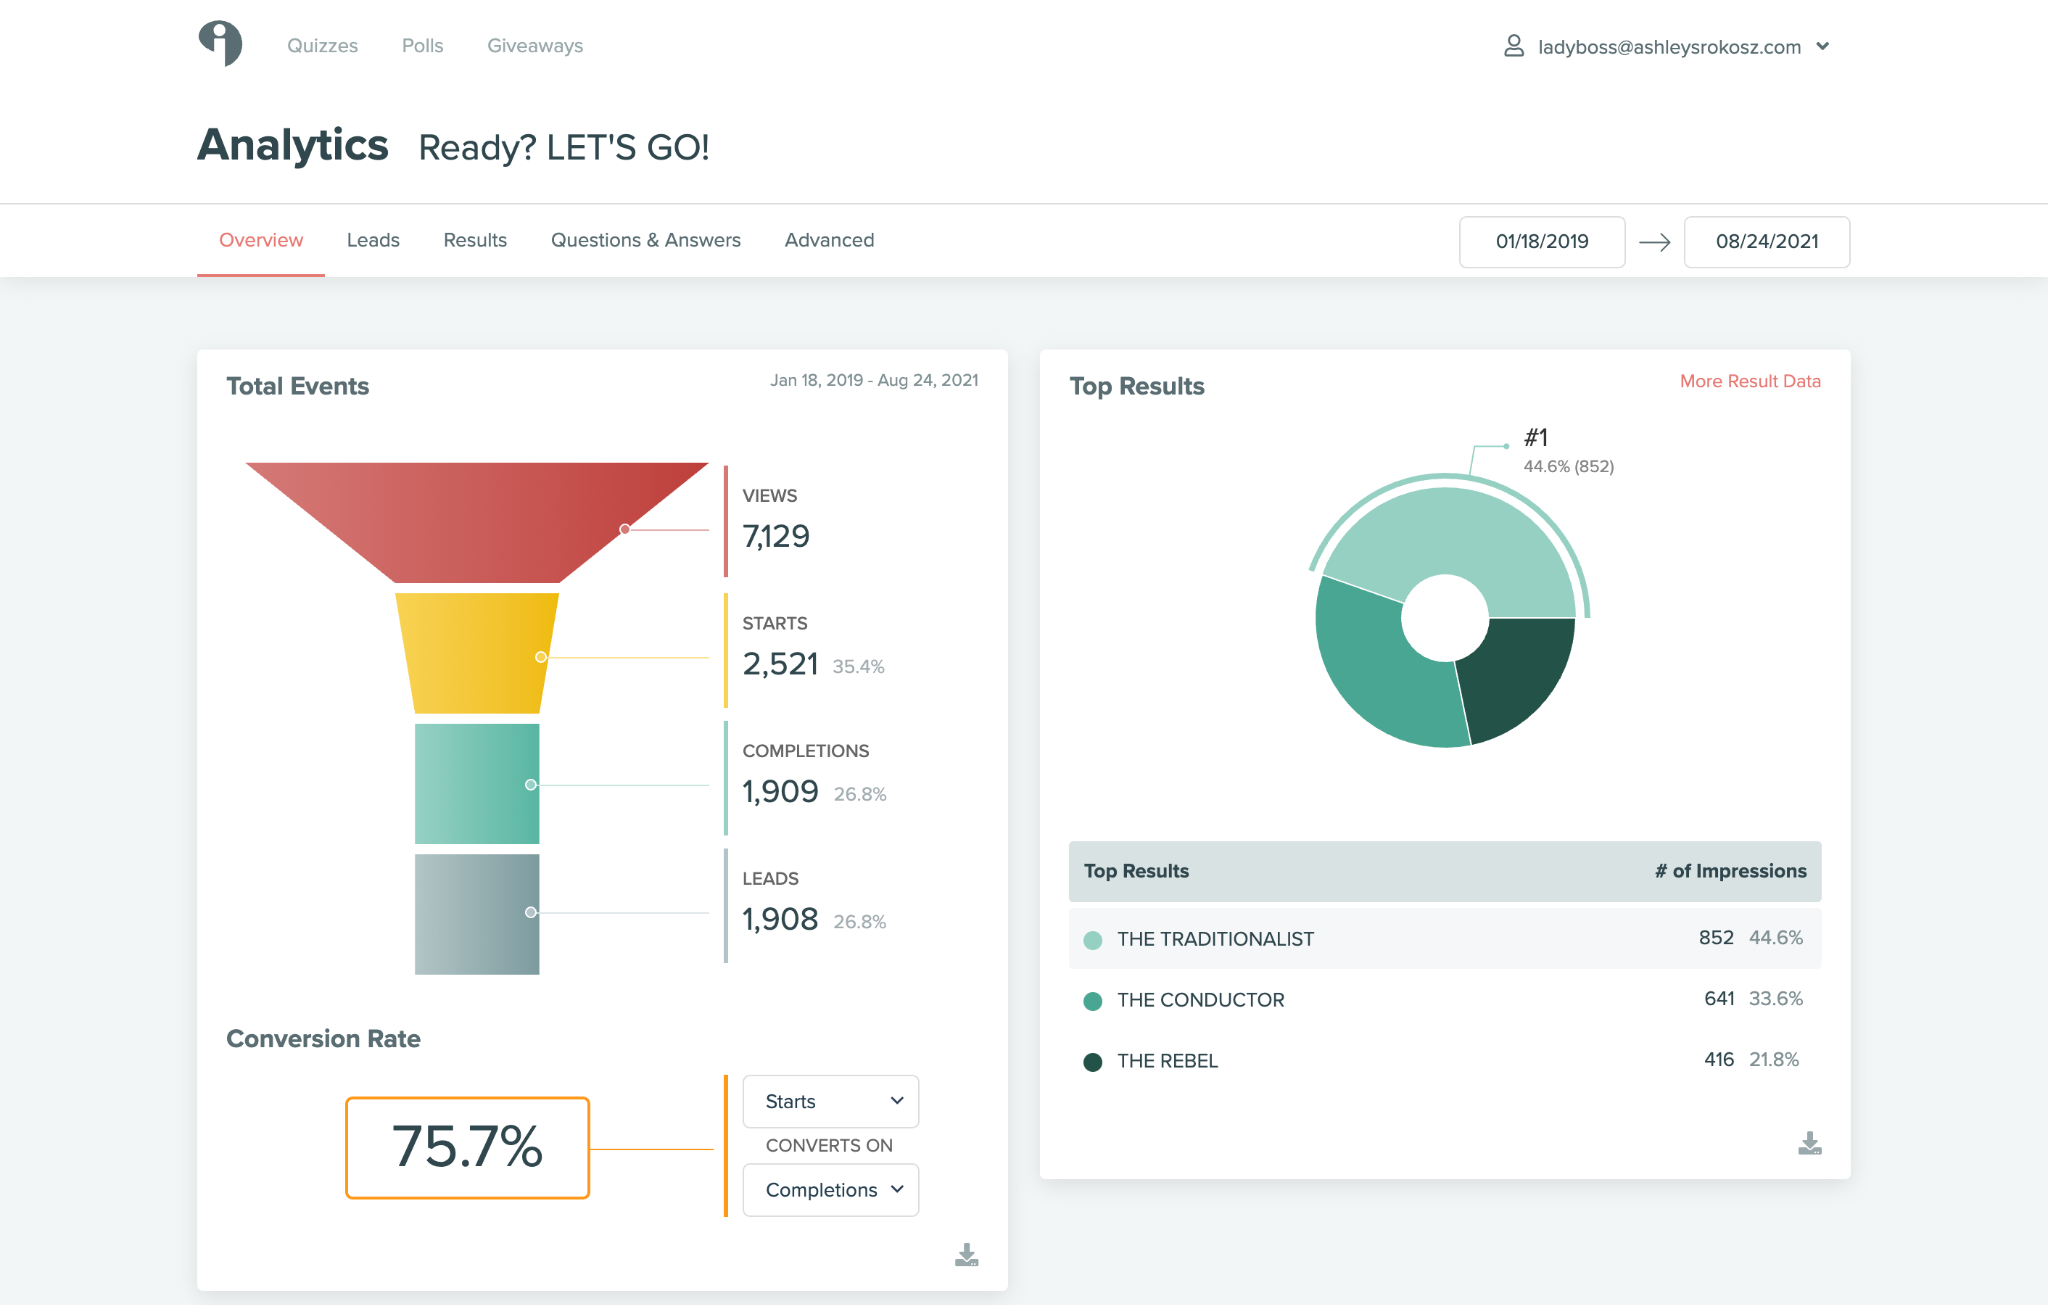 quiz analytics with over 75% start to completion